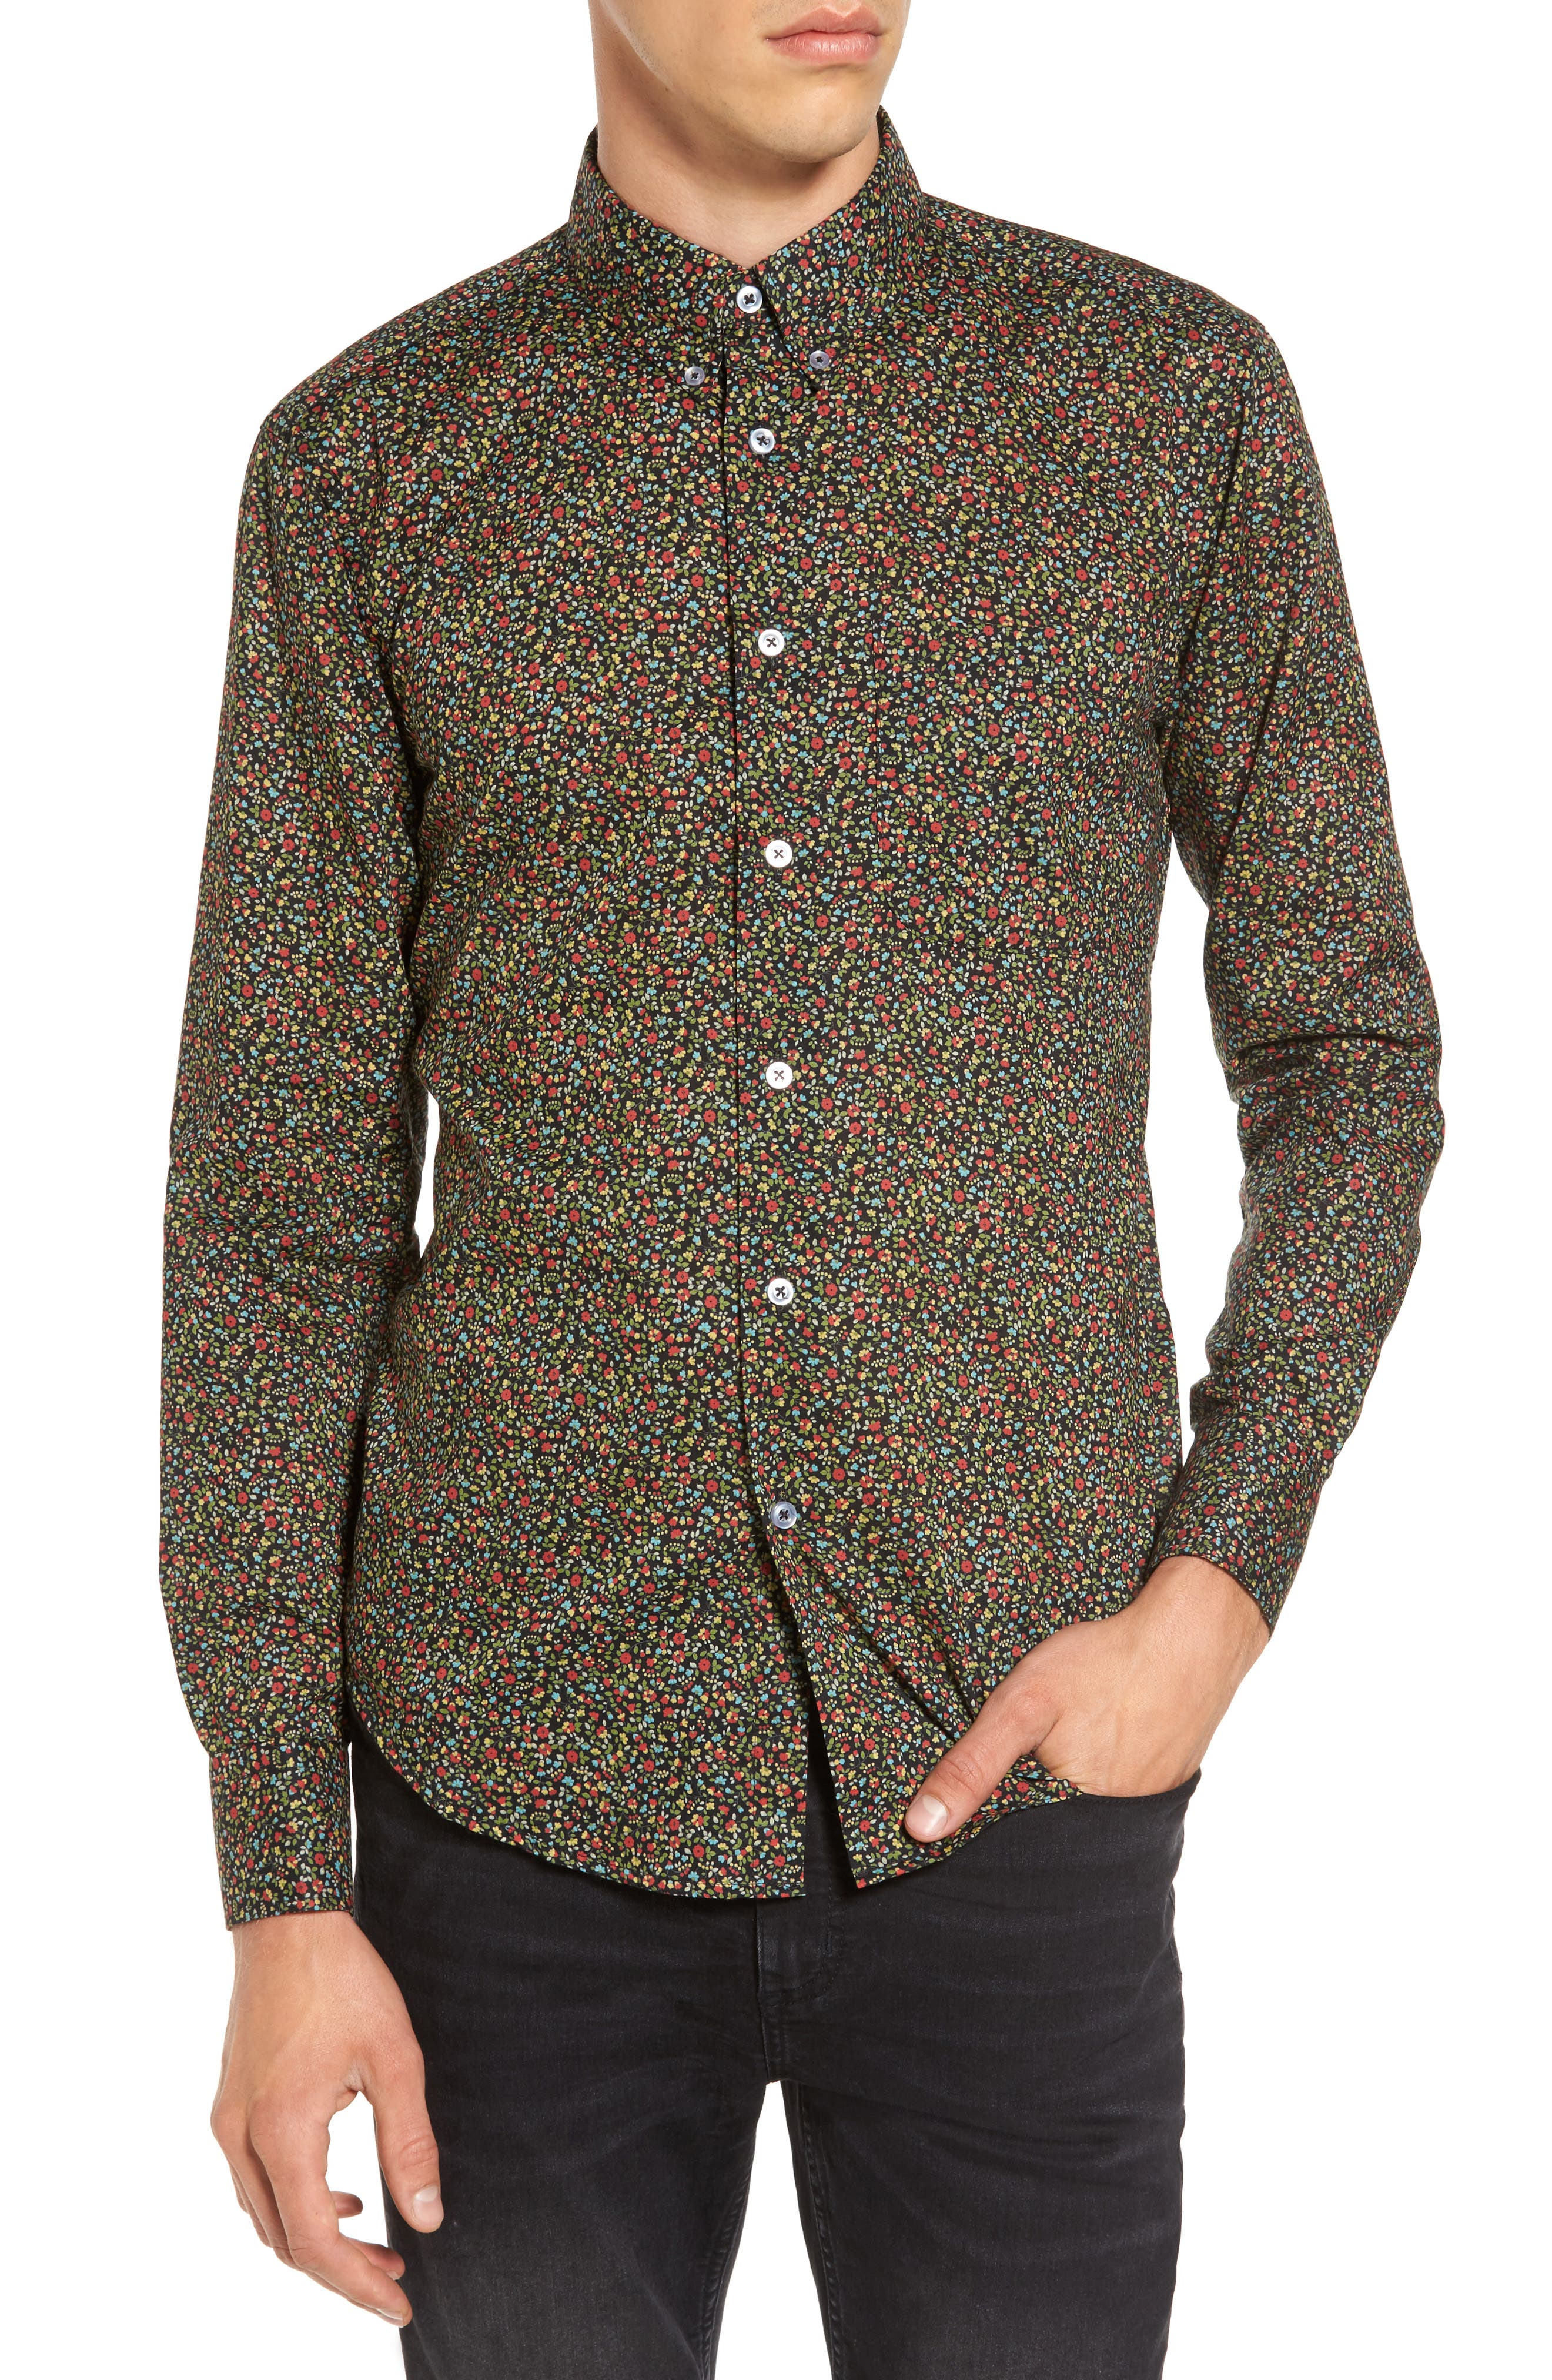 Naked & Famous Floral Shirt,                         Main,                         color,